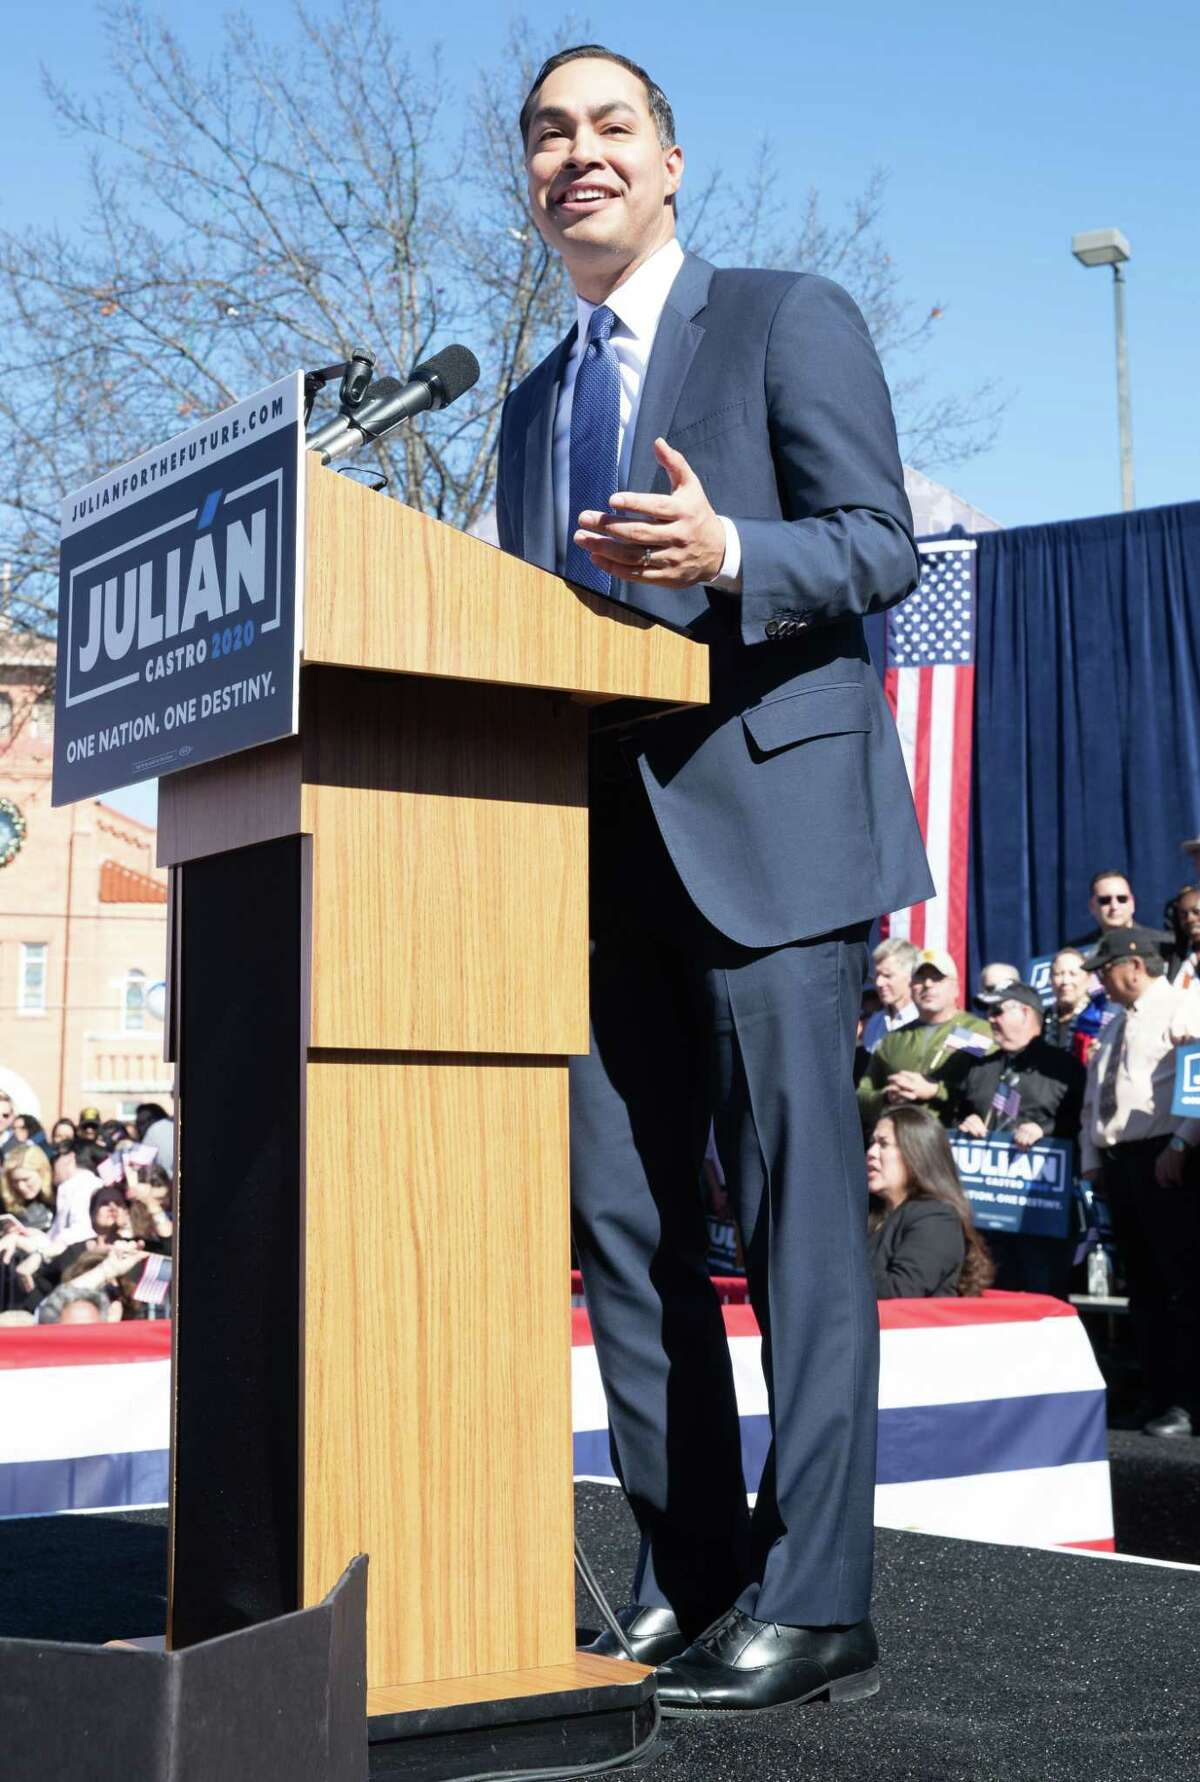 Former United States Secretary of Housing and Urban Development Juliàn Castro announces his candidacy for President of the United States in his hometown of San Antonio, Texas on January 12, 2019. (Photo by SUZANNE CORDEIRO / AFP)SUZANNE CORDEIRO/AFP/Getty Images